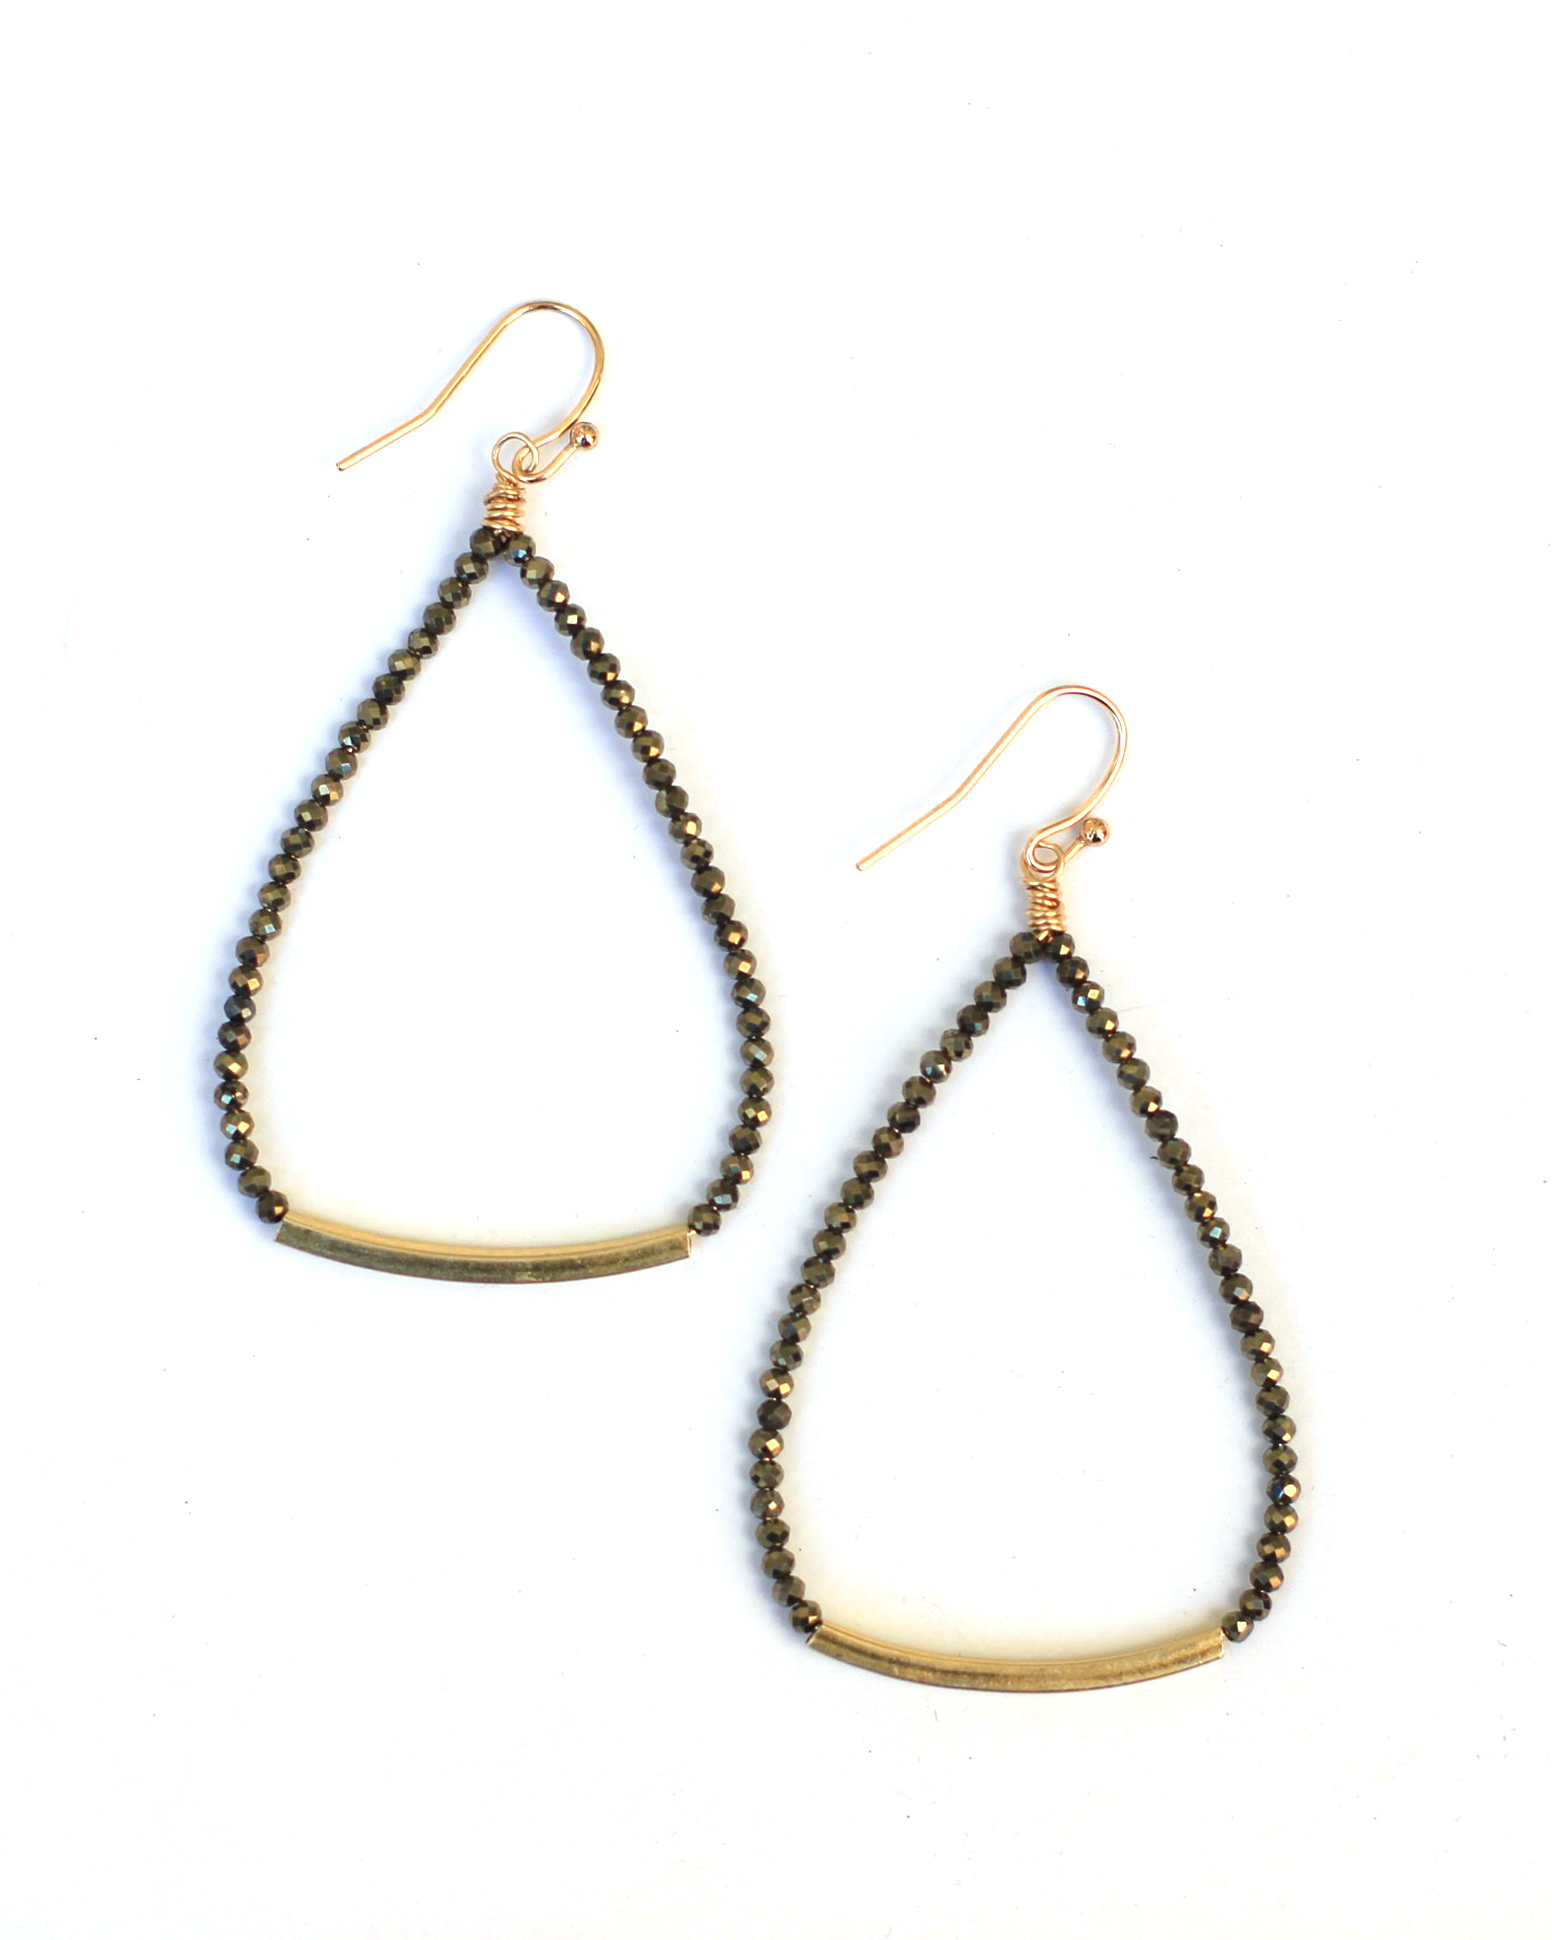 A perfect pair: The Beaded Bar Earring in Pyrite